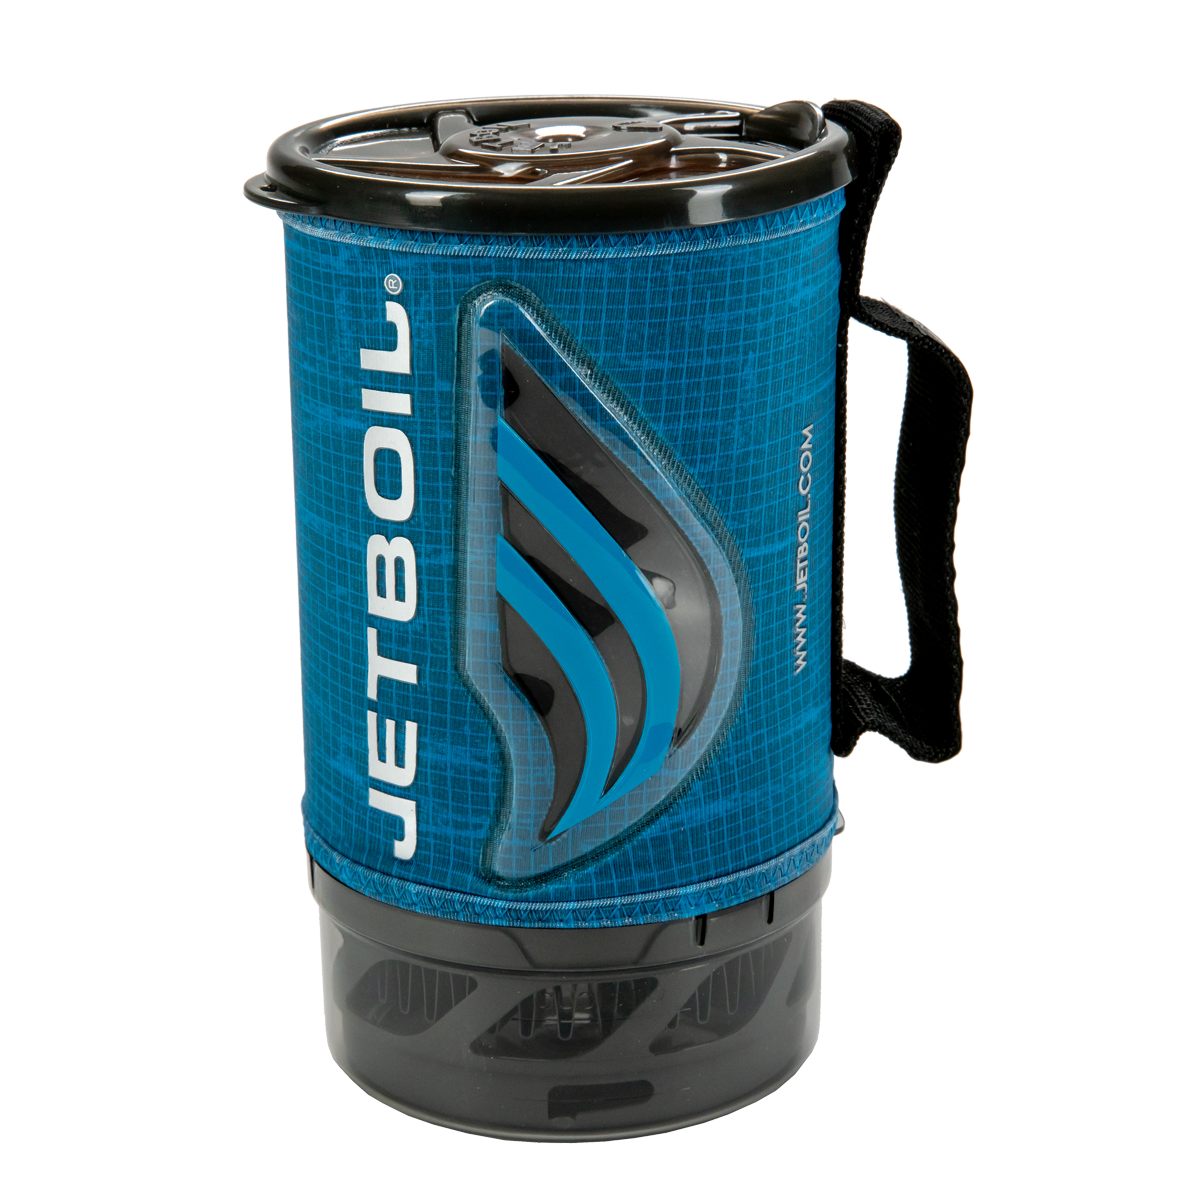 JetBoil Flash Cooking System JRIJBFla